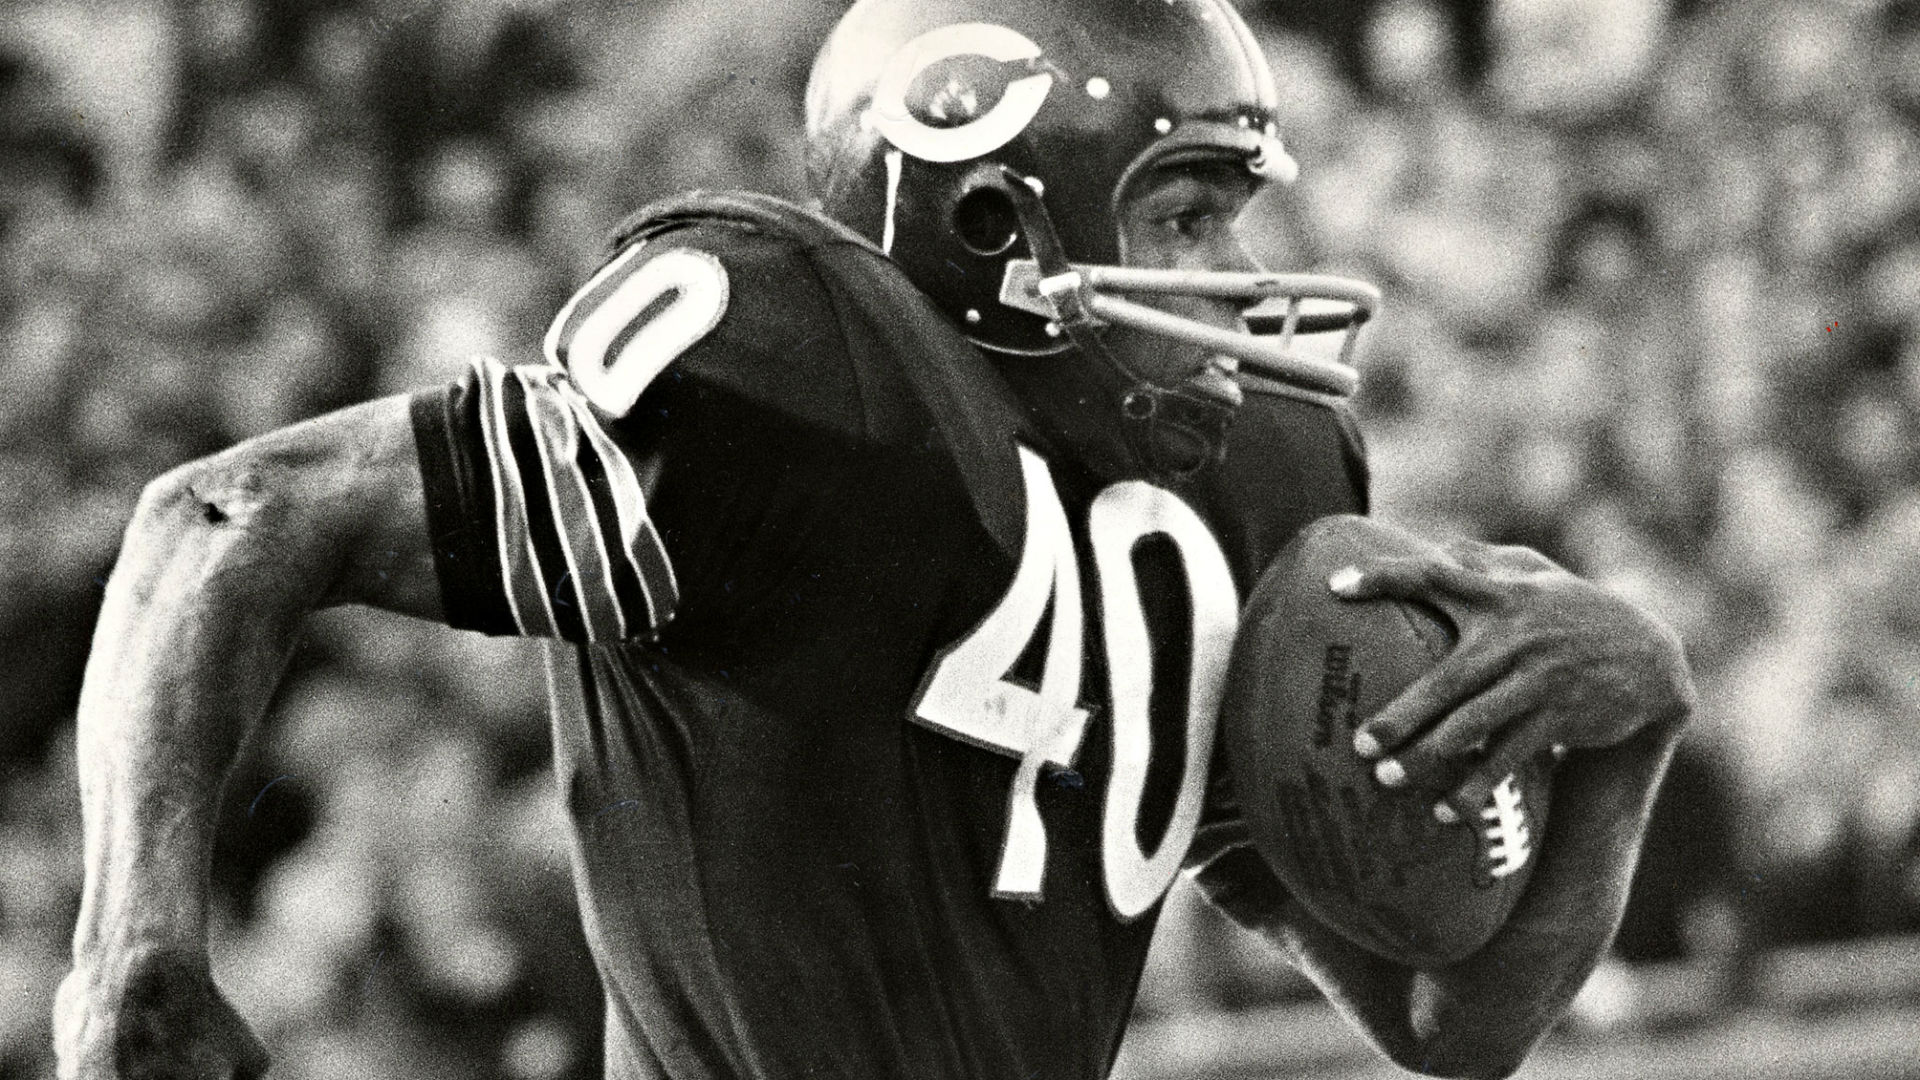 Classic film 'Brian's Song' now serves as fitting eulogy to both Brian Piccolo and Gale Sayers 1